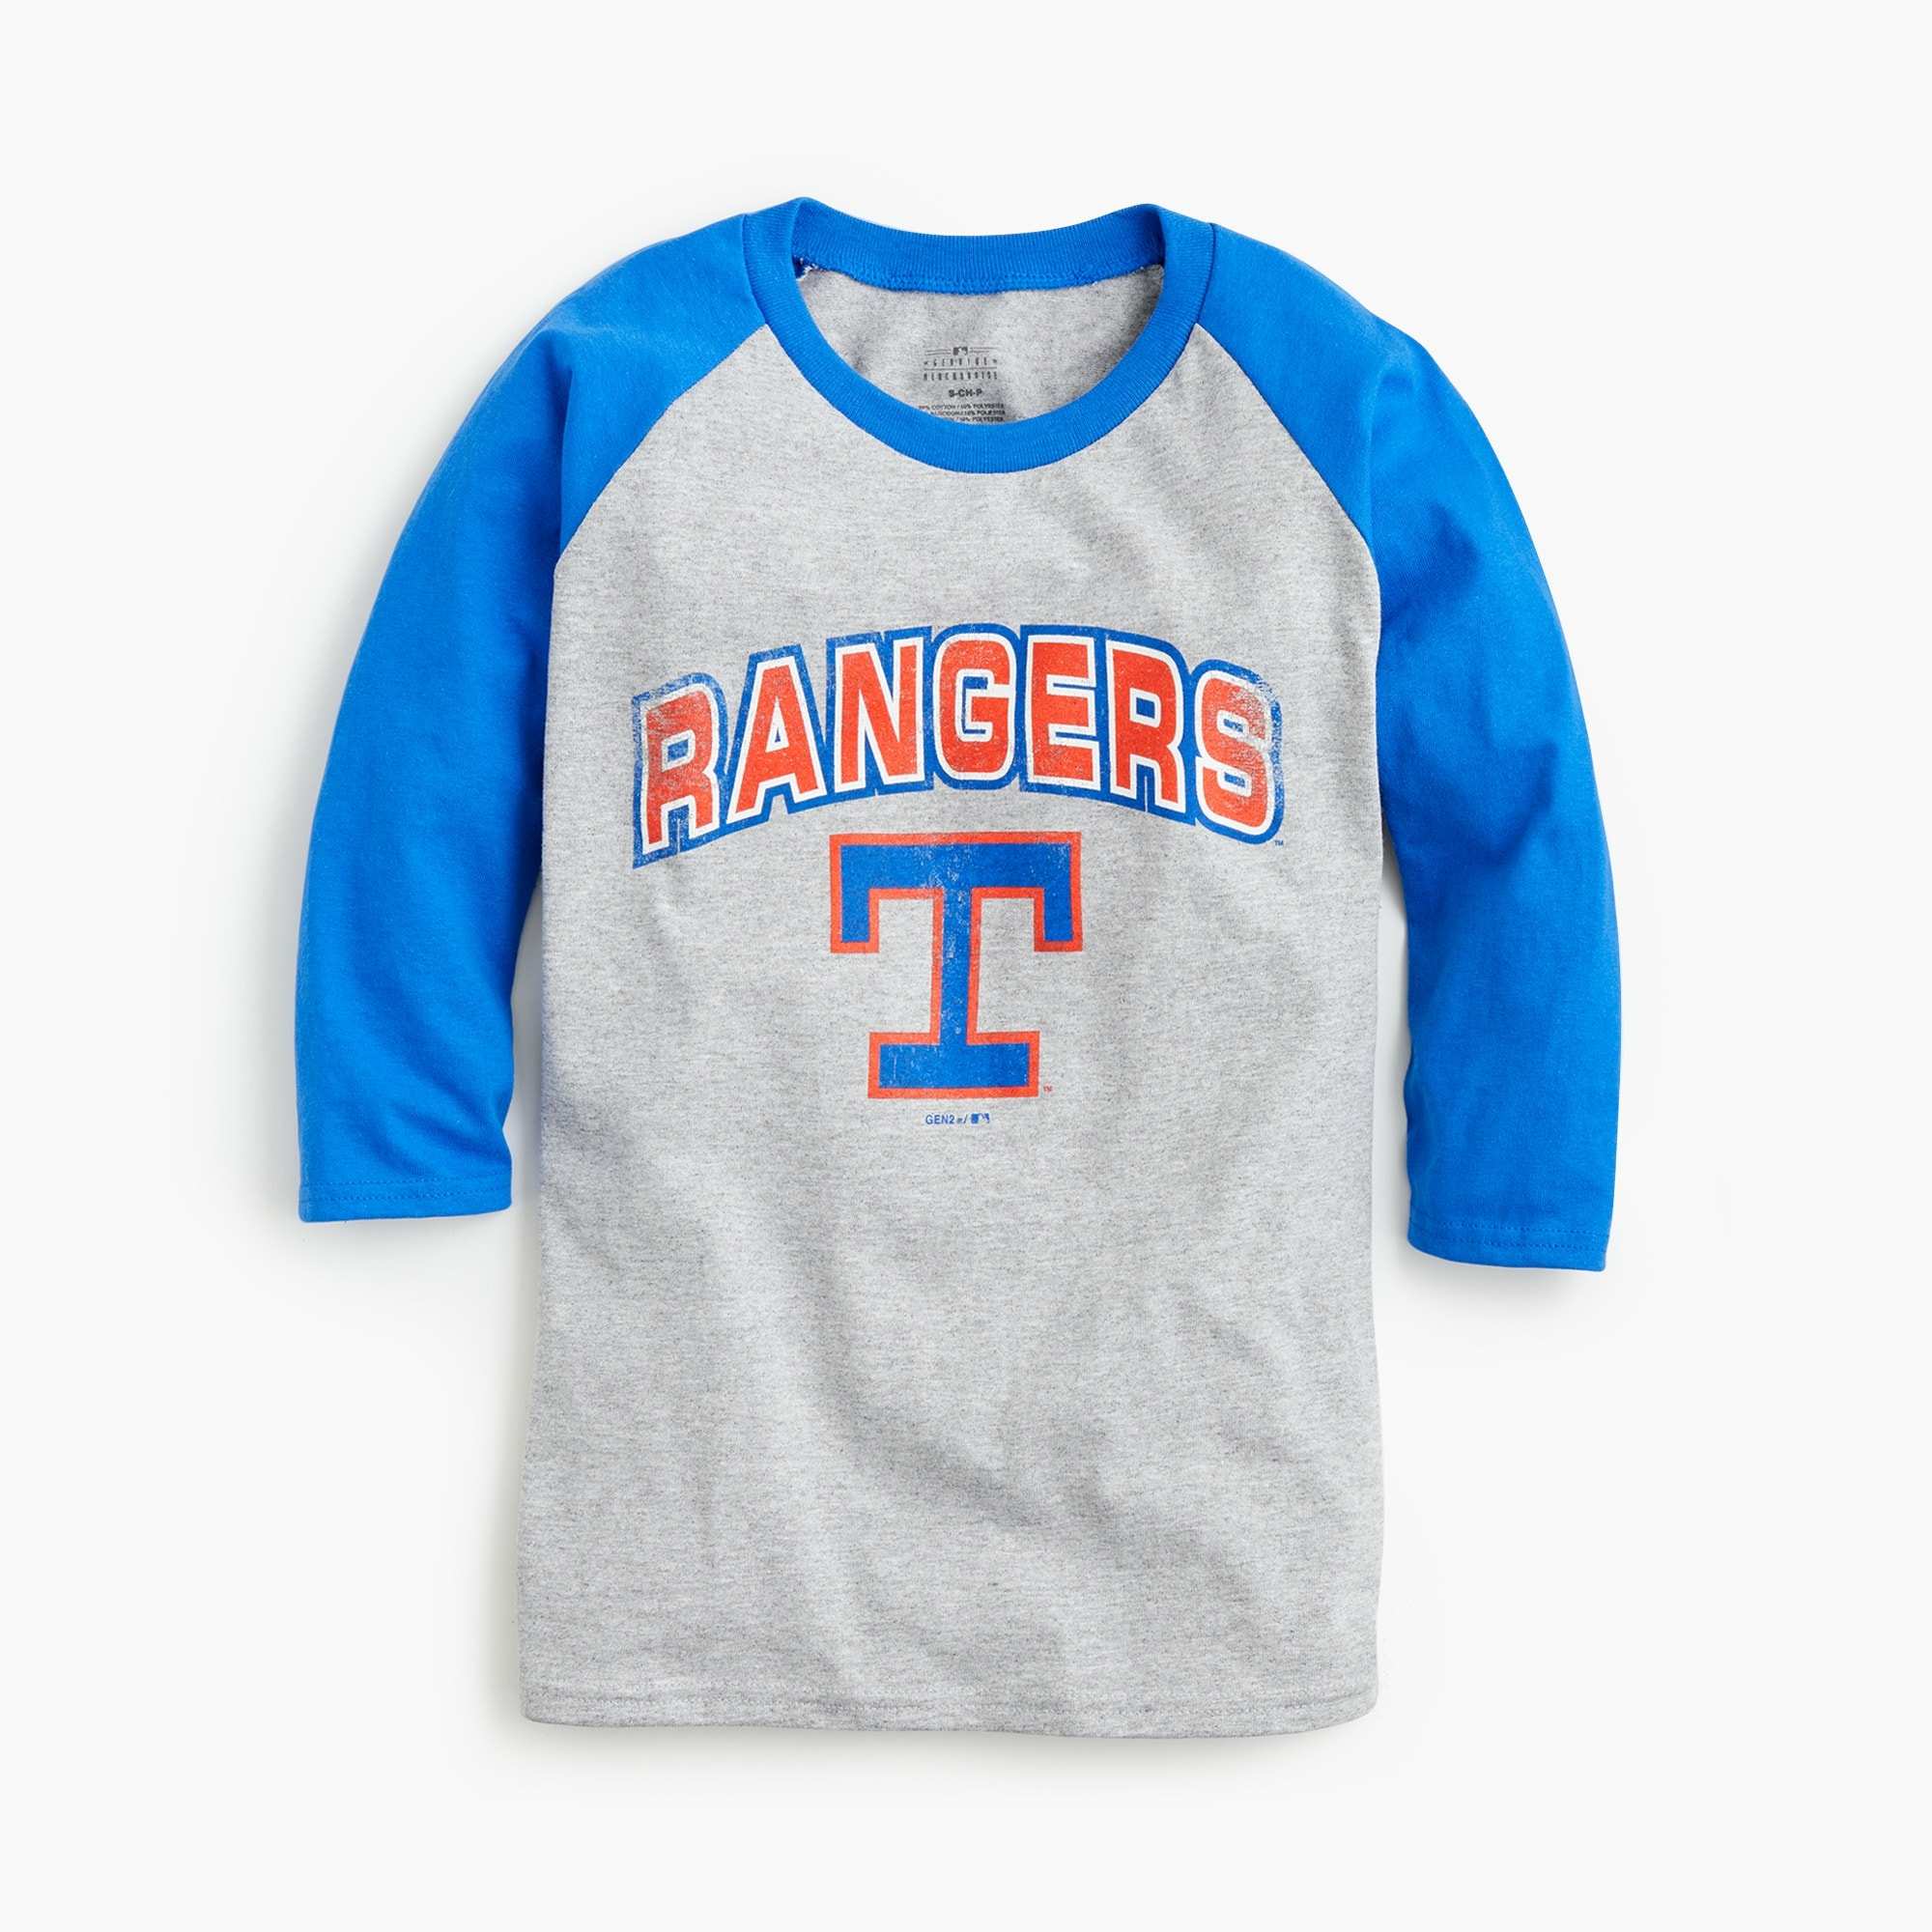 boys Kids' Texas Rangers baseball T-shirt